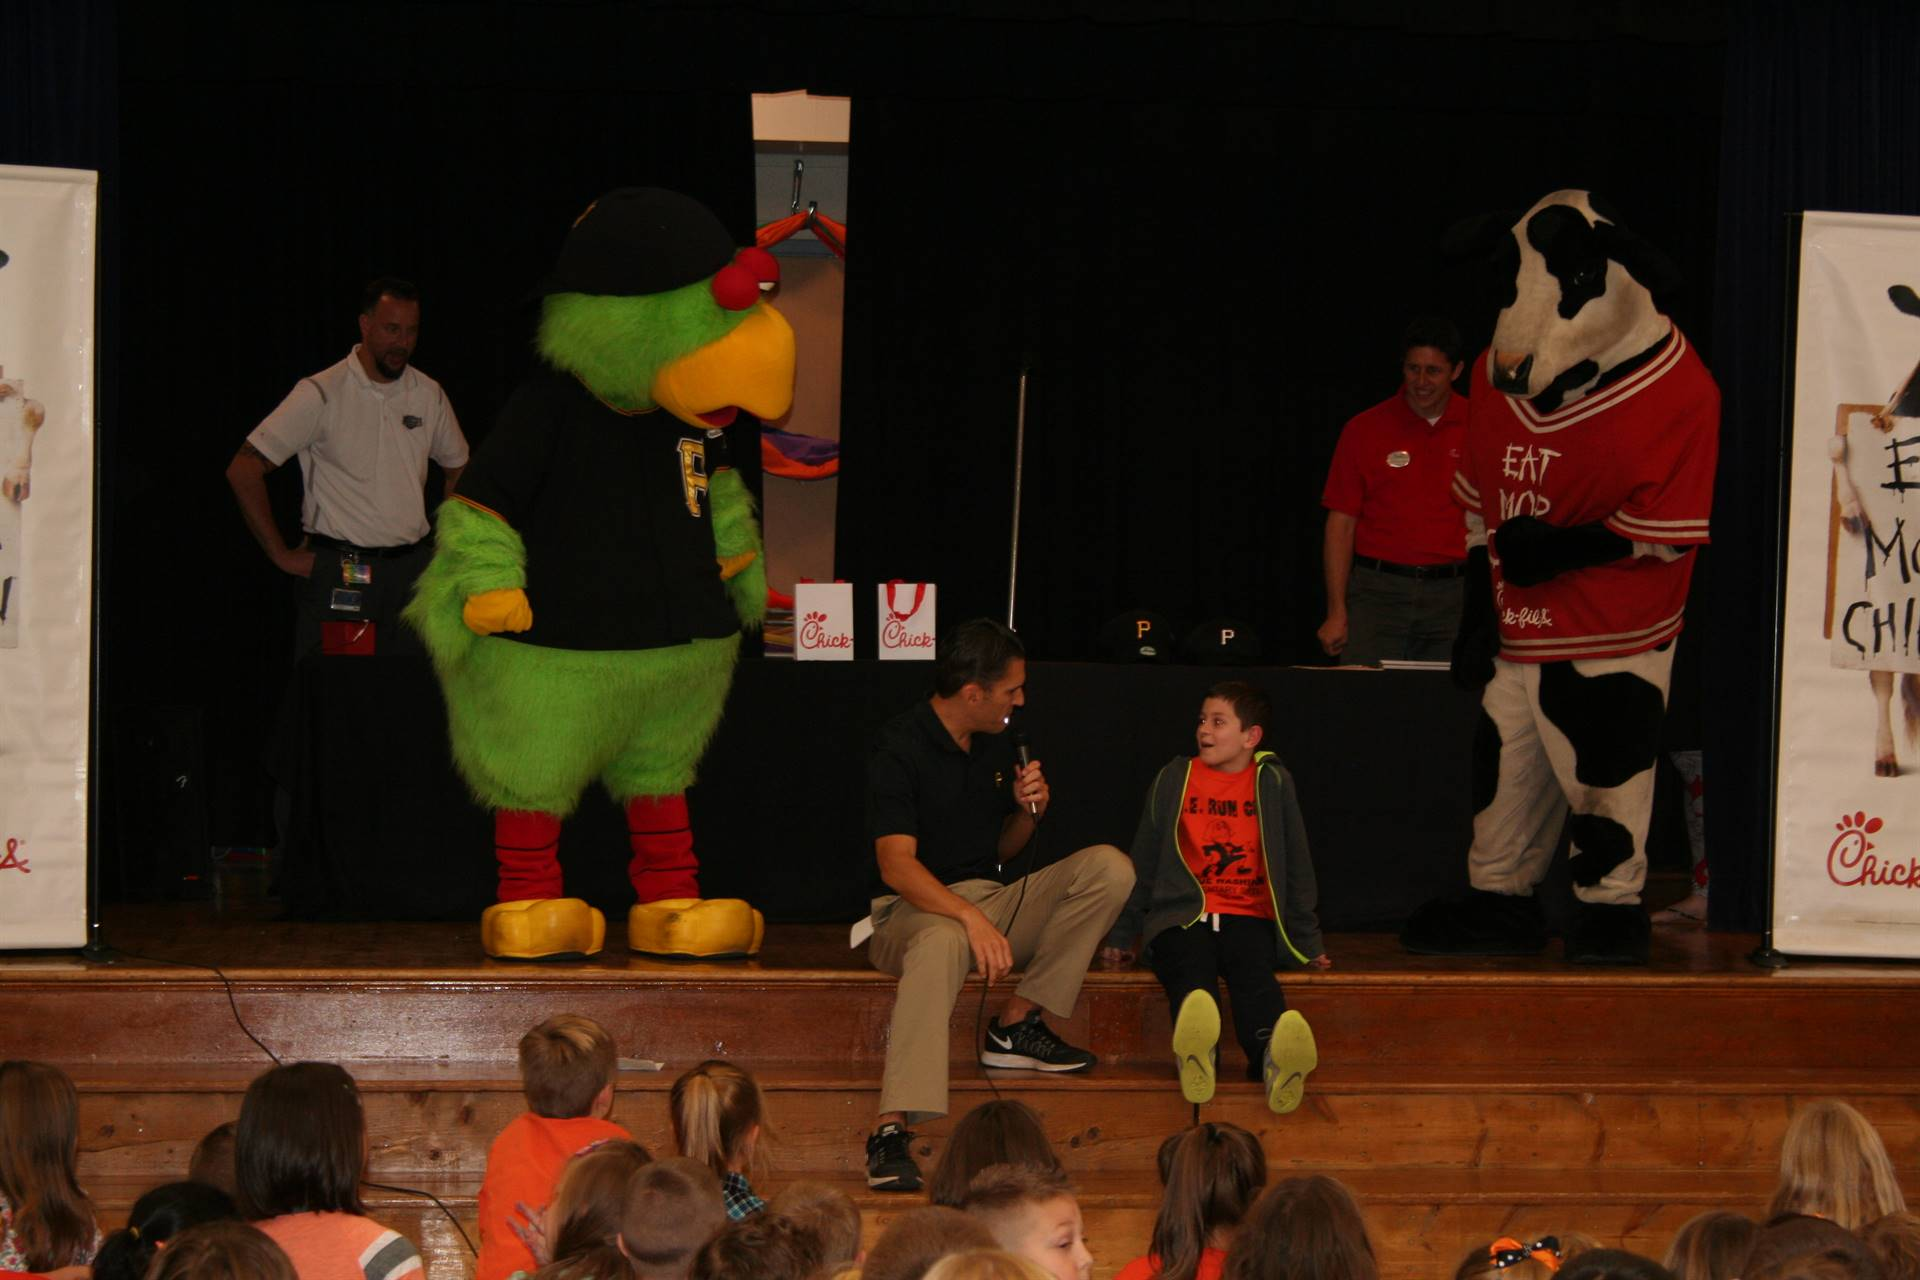 The Pirate Parrot/Chick-Fil-A Cow Assembly